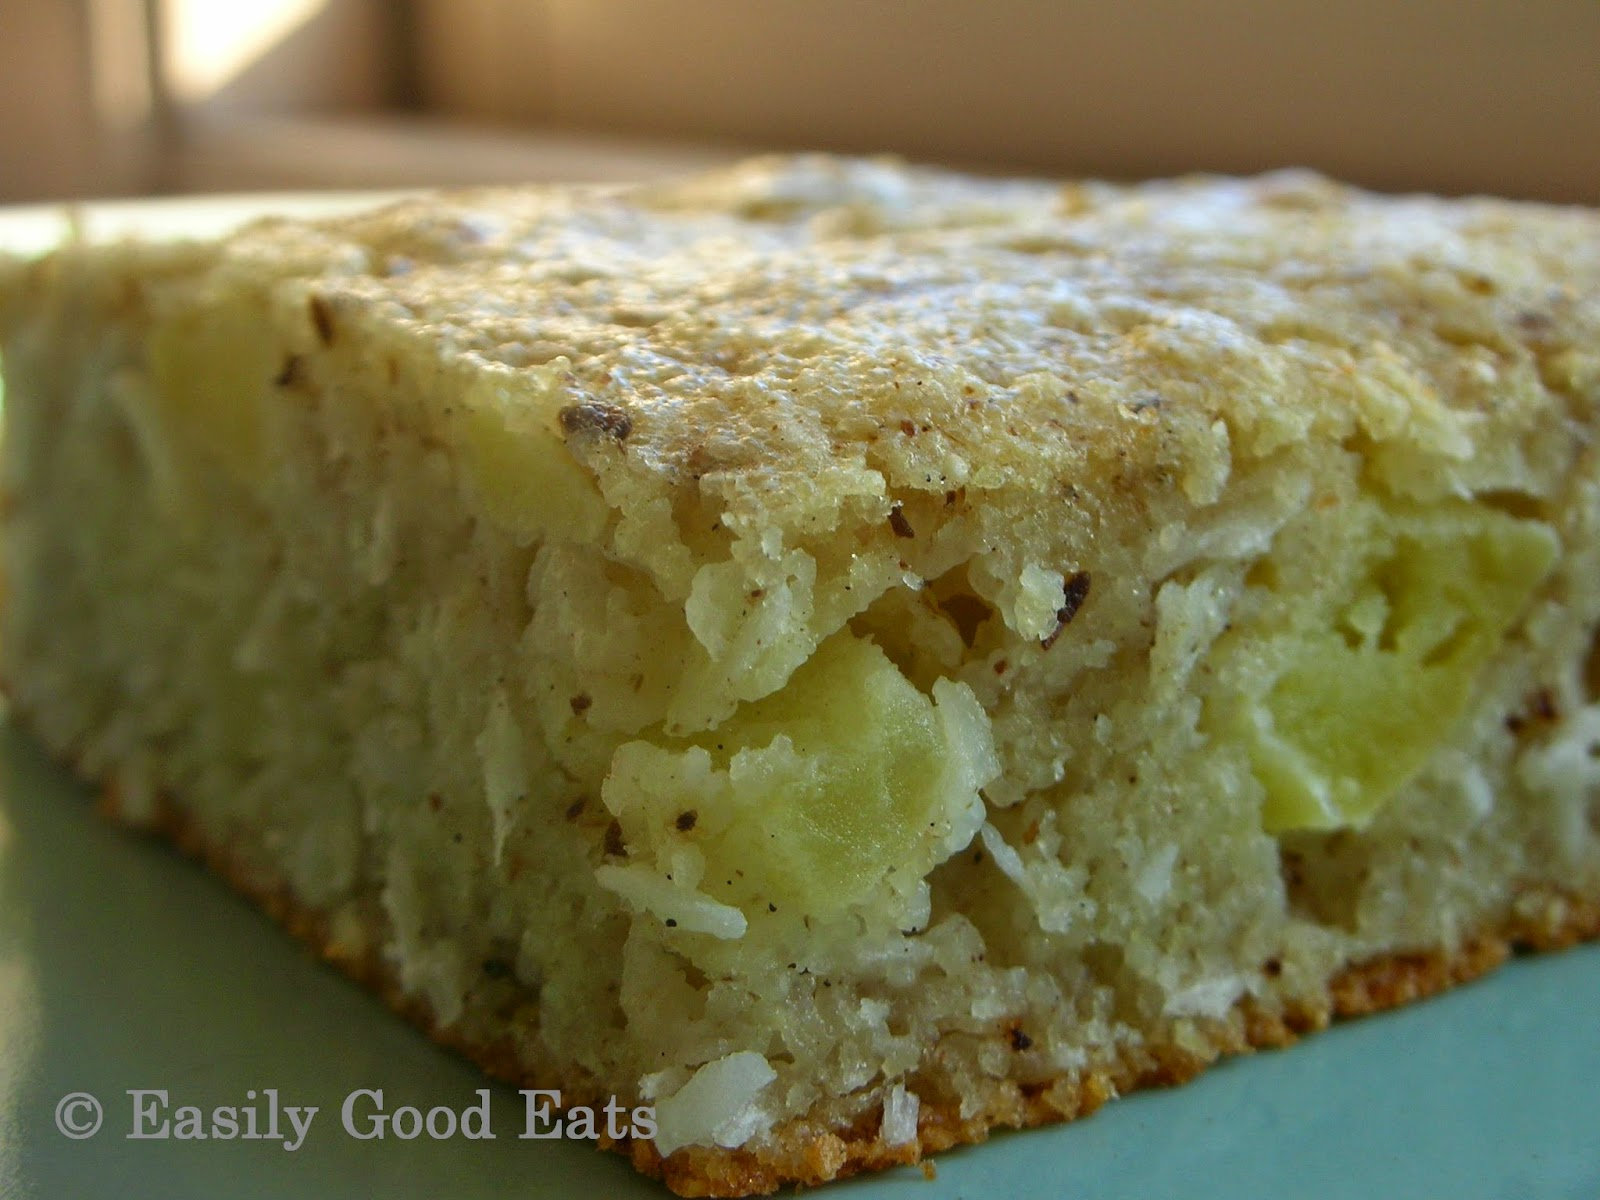 Easily Good Eats: Semolina Coconut Apple Cake Recipe